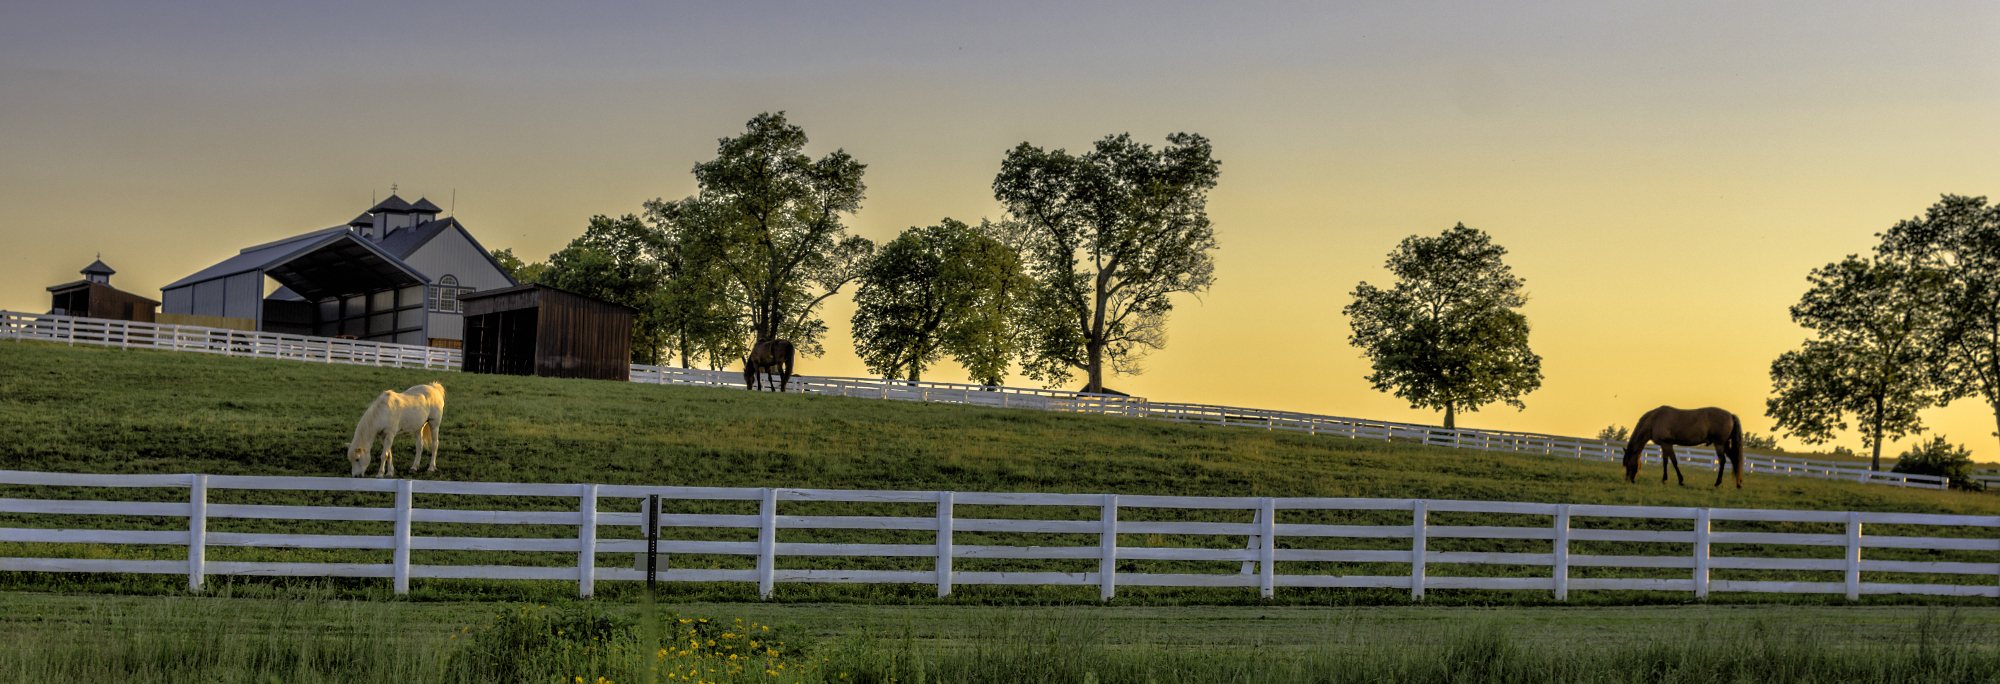 Horse Farm with Two Horses in a Pasture at Sunrise